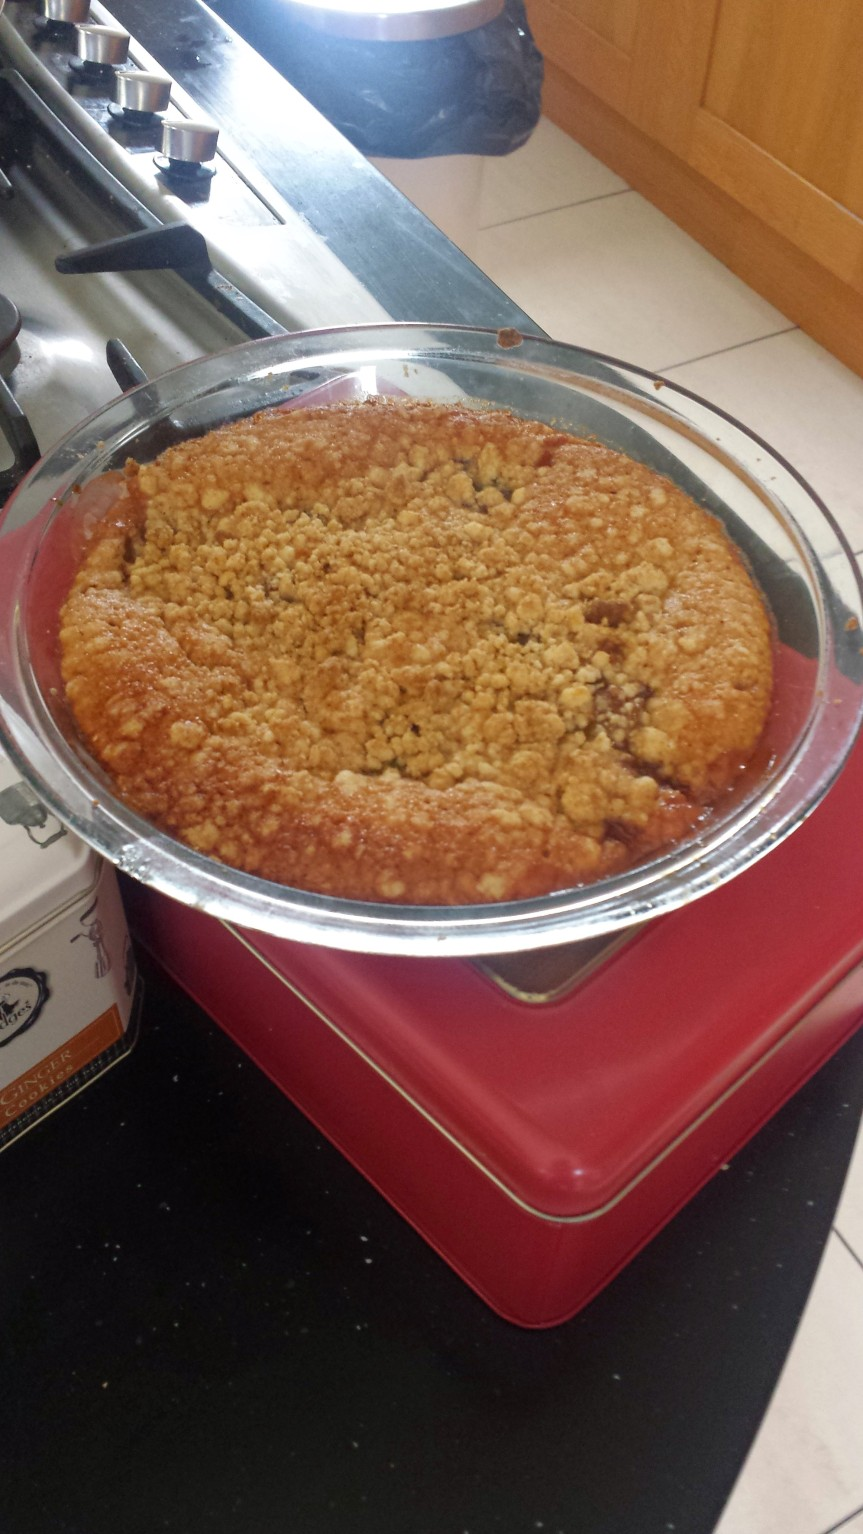 Today I made rhubarbcrumble